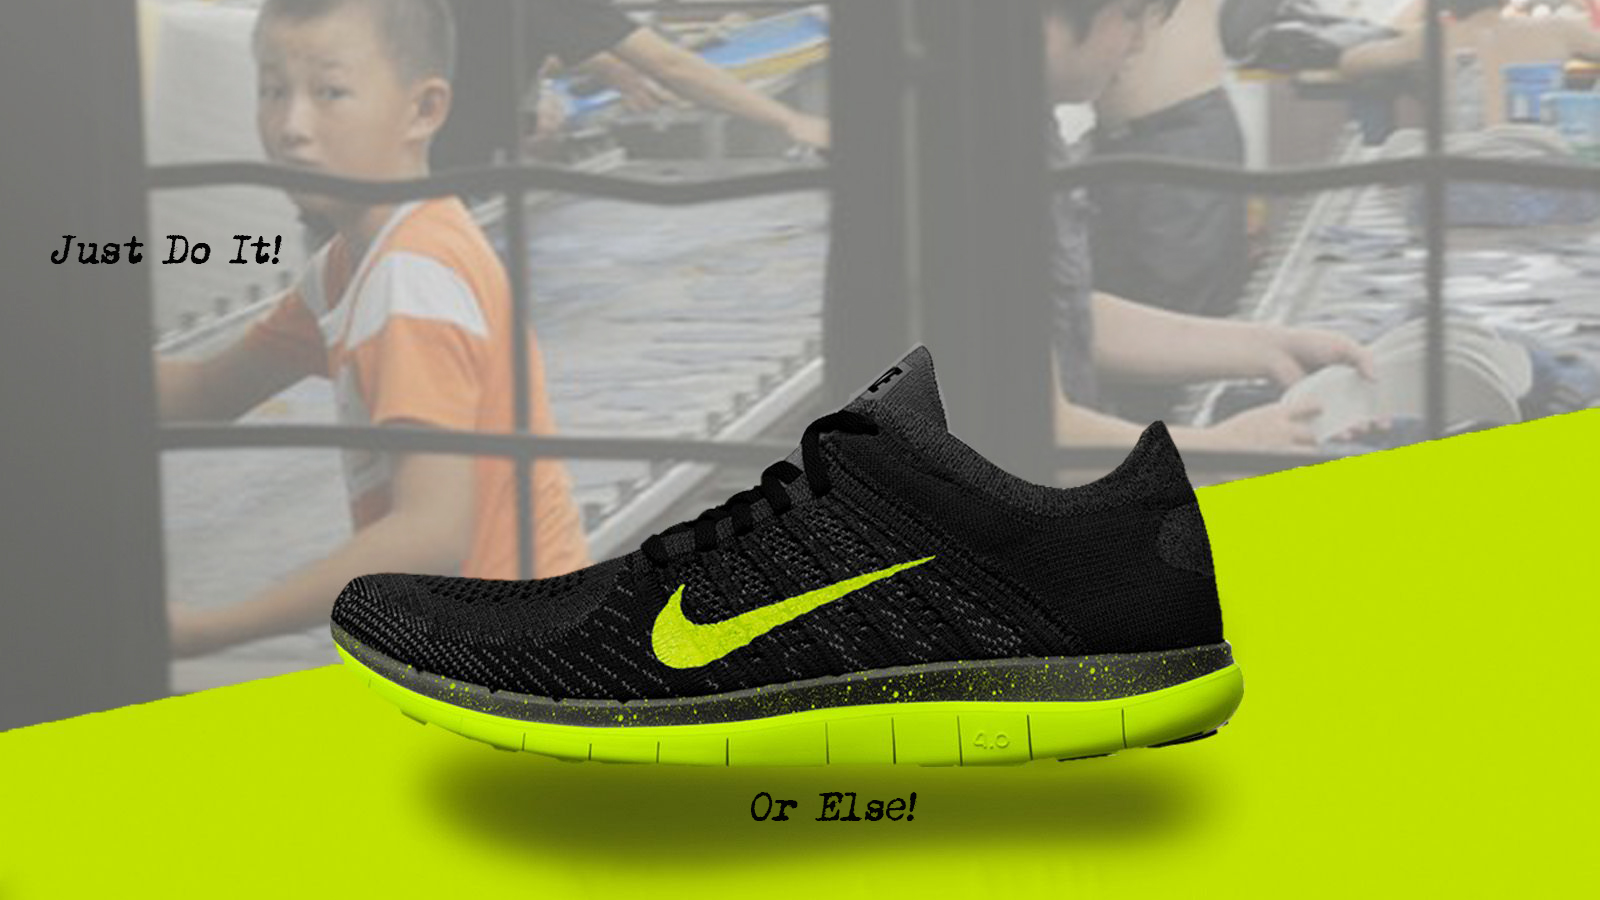 Nike is one of the most famous child labor benefactors but not the only one!